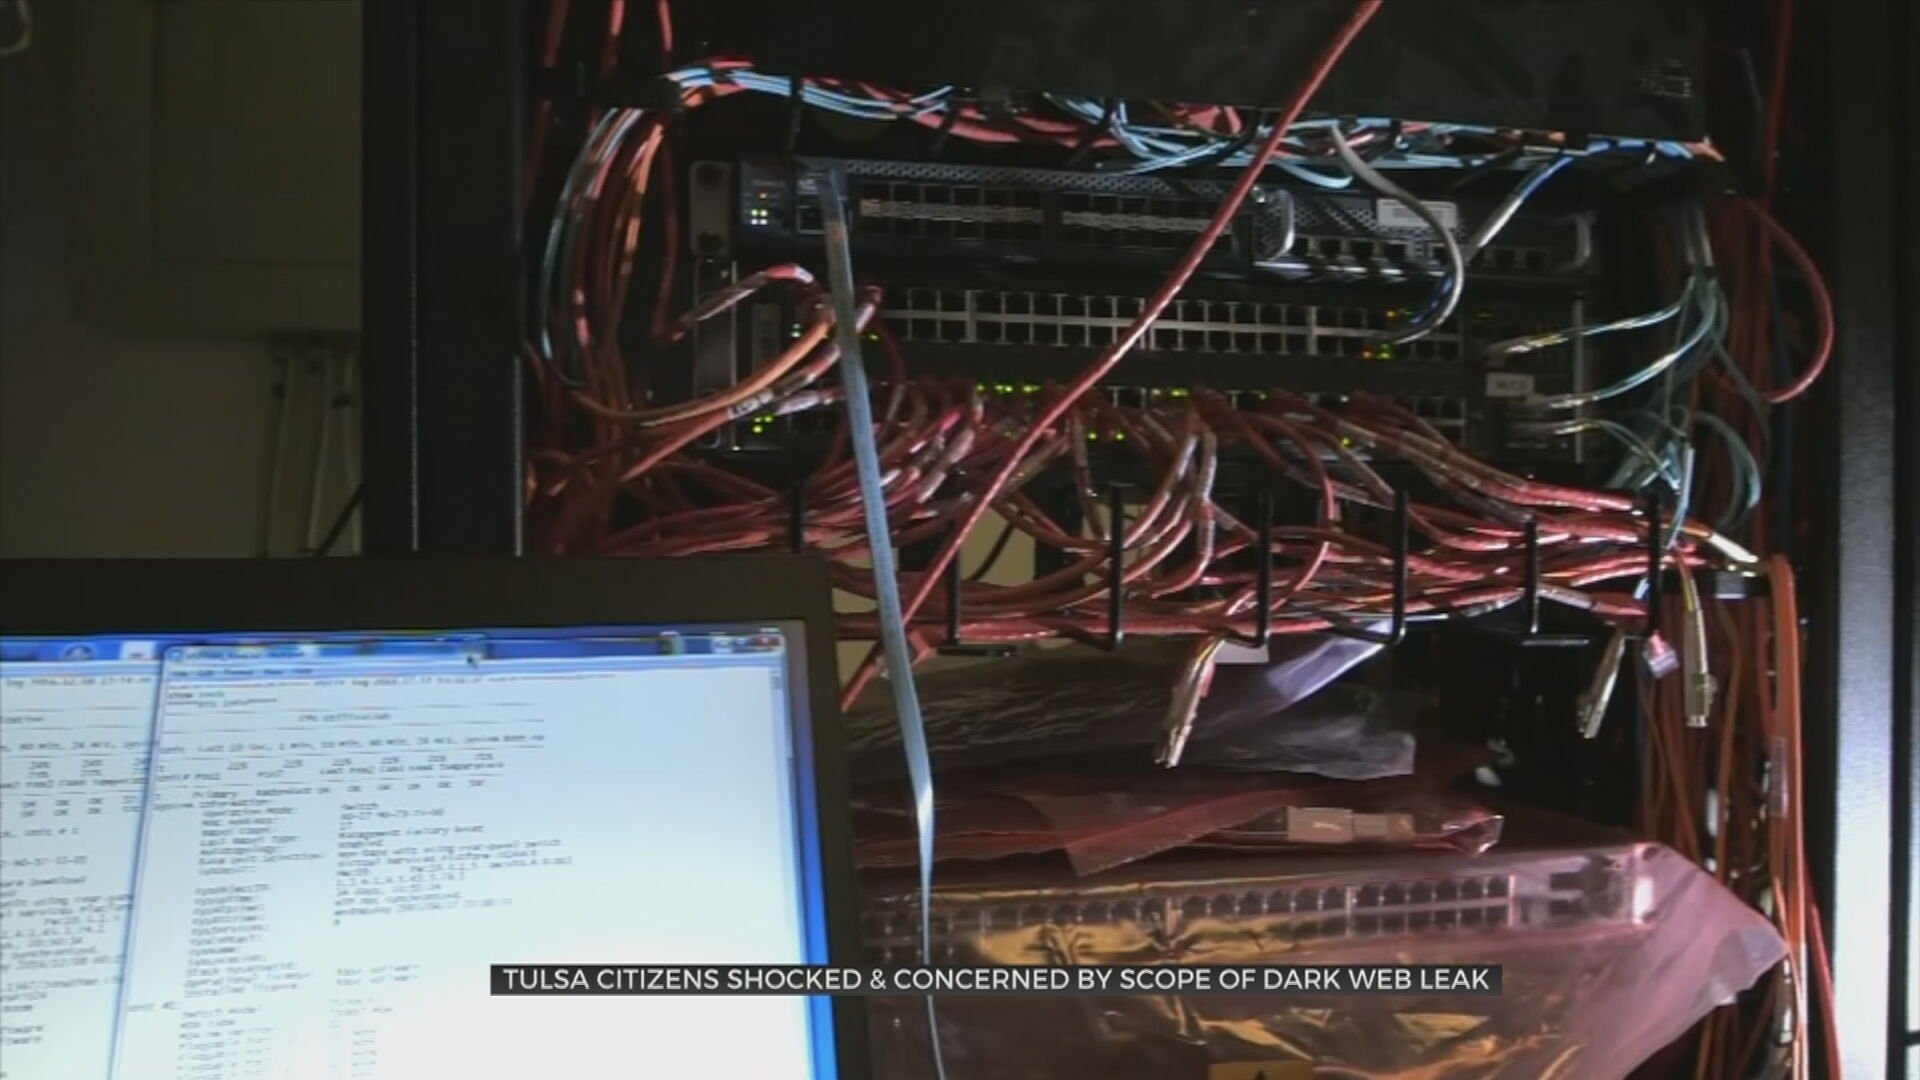 City Of Tulsa Advises Residents To Monitor Personal Information After Ransomware Attack